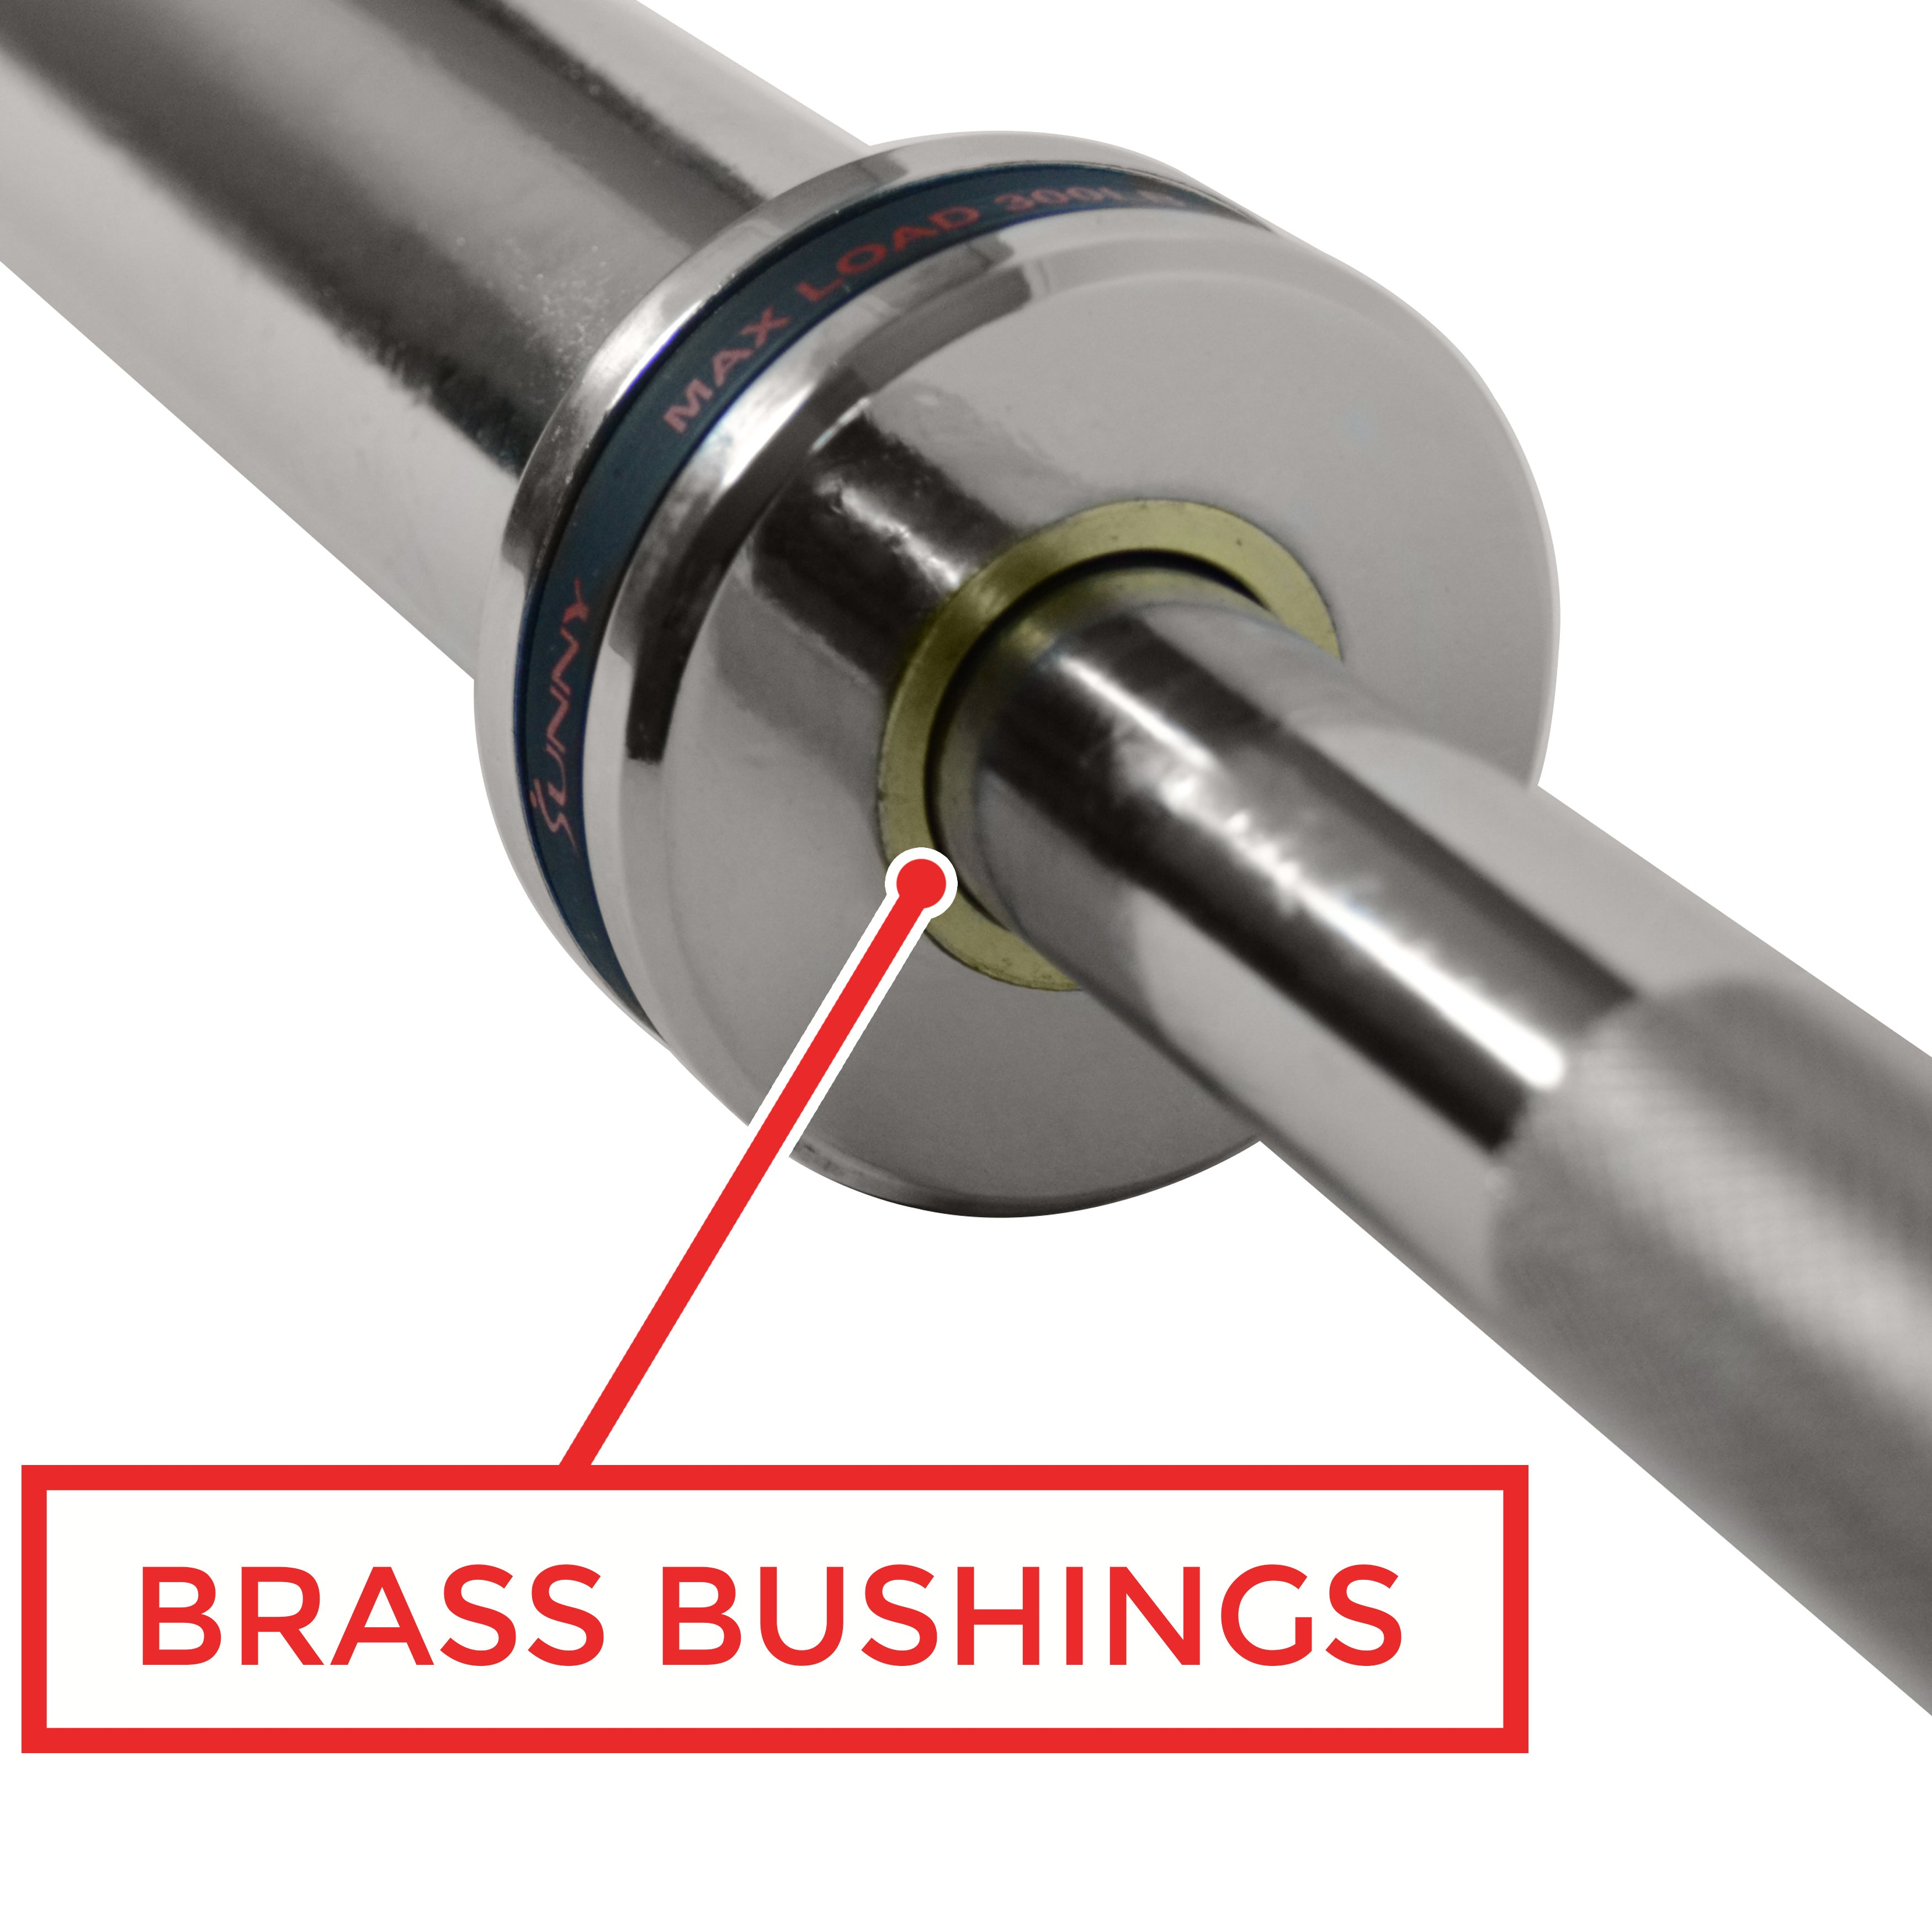 OB-Series-Bushing-Diagram.jpg